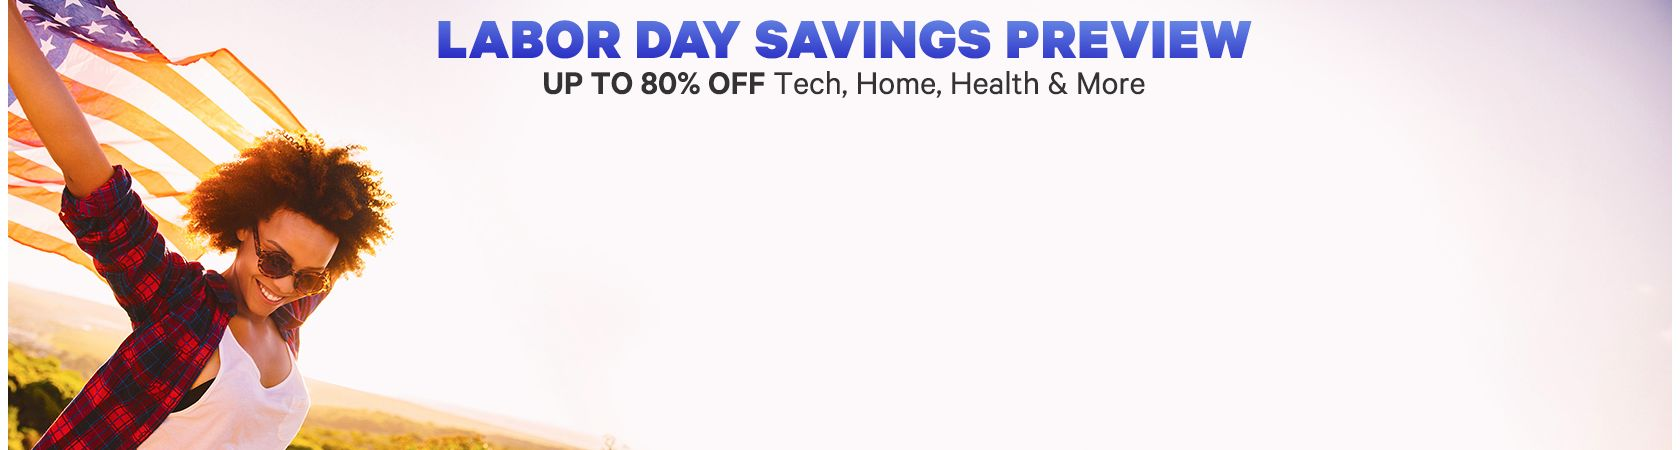 Labor Day Savings Preview Groupon